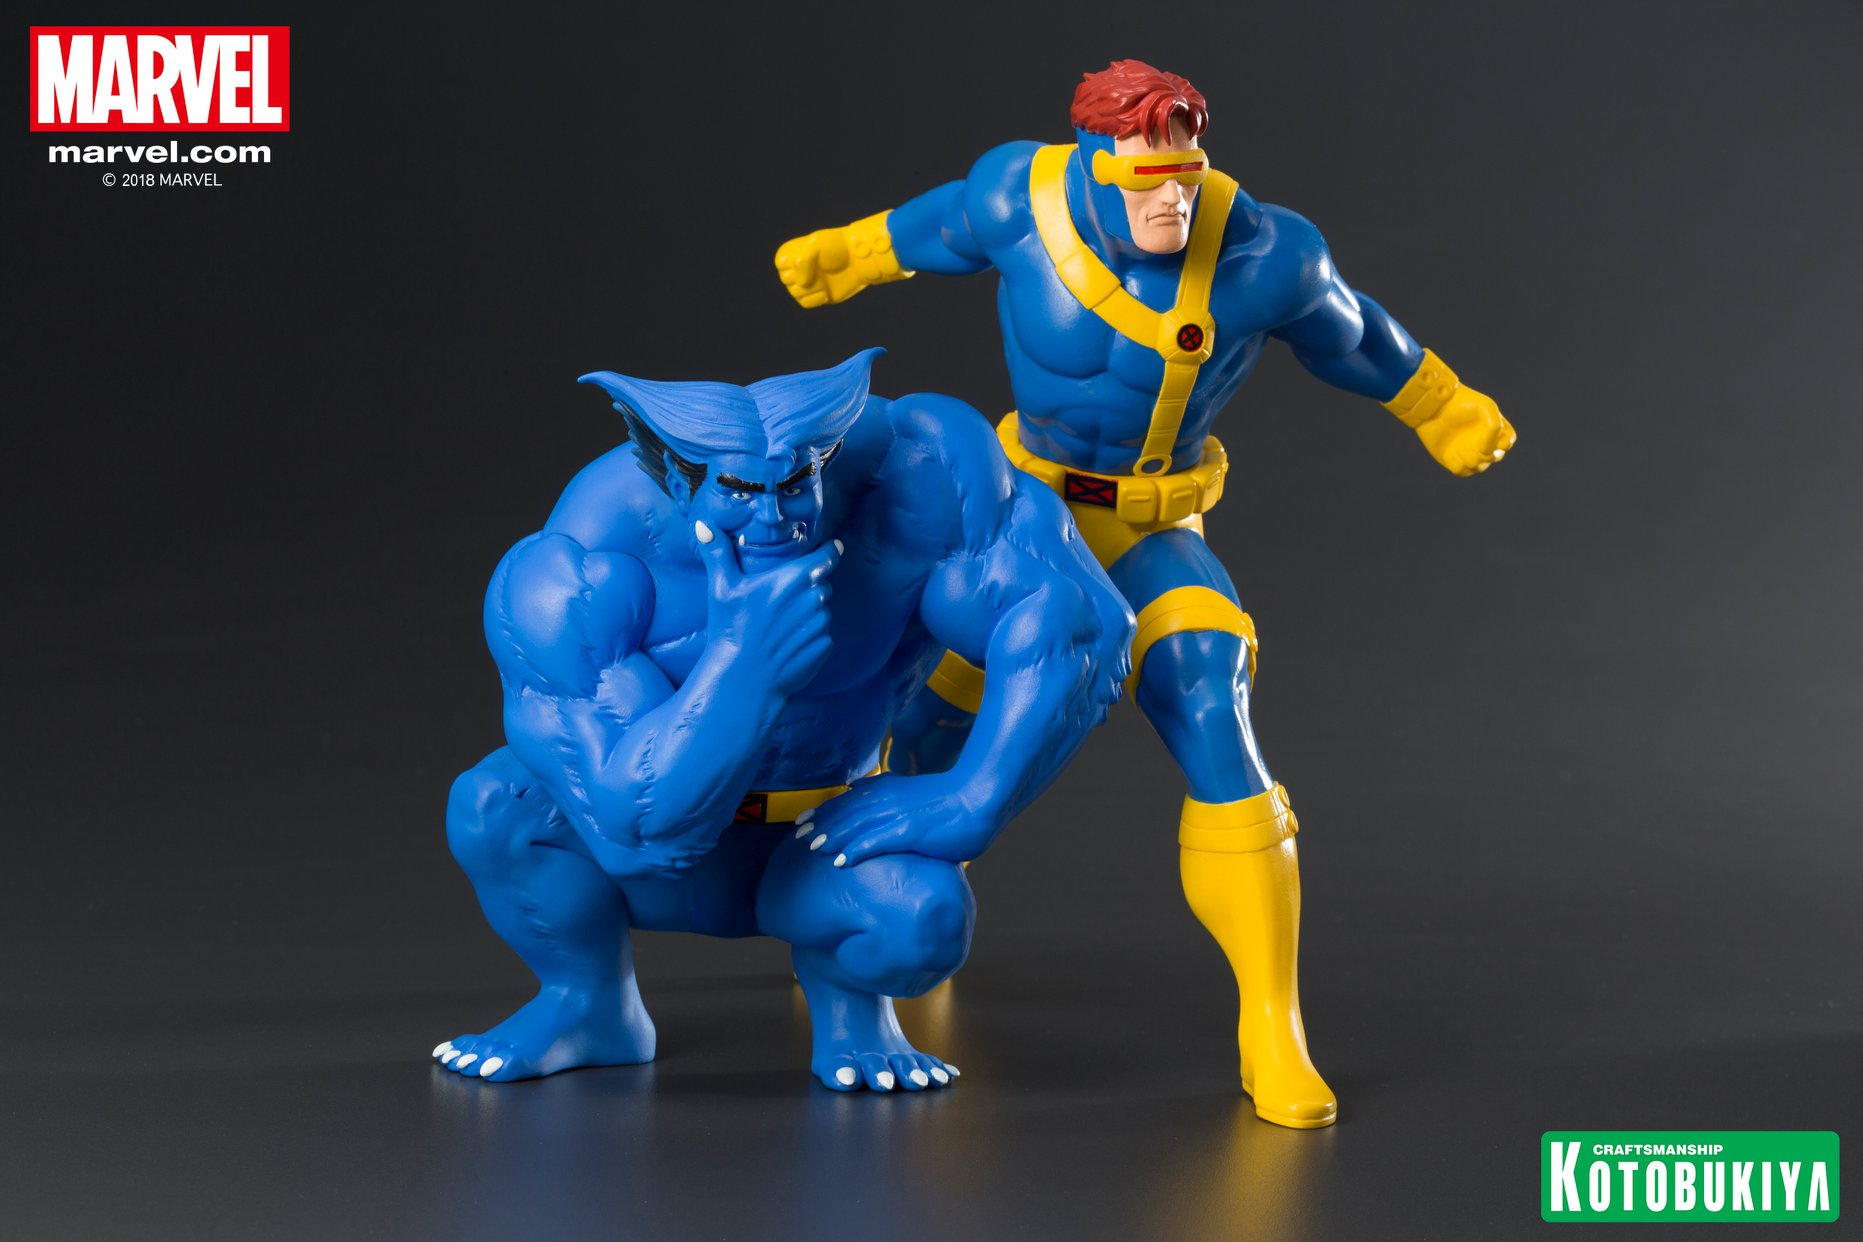 X Men Cartoon Beast And Cyclops Statue 2 Pack By